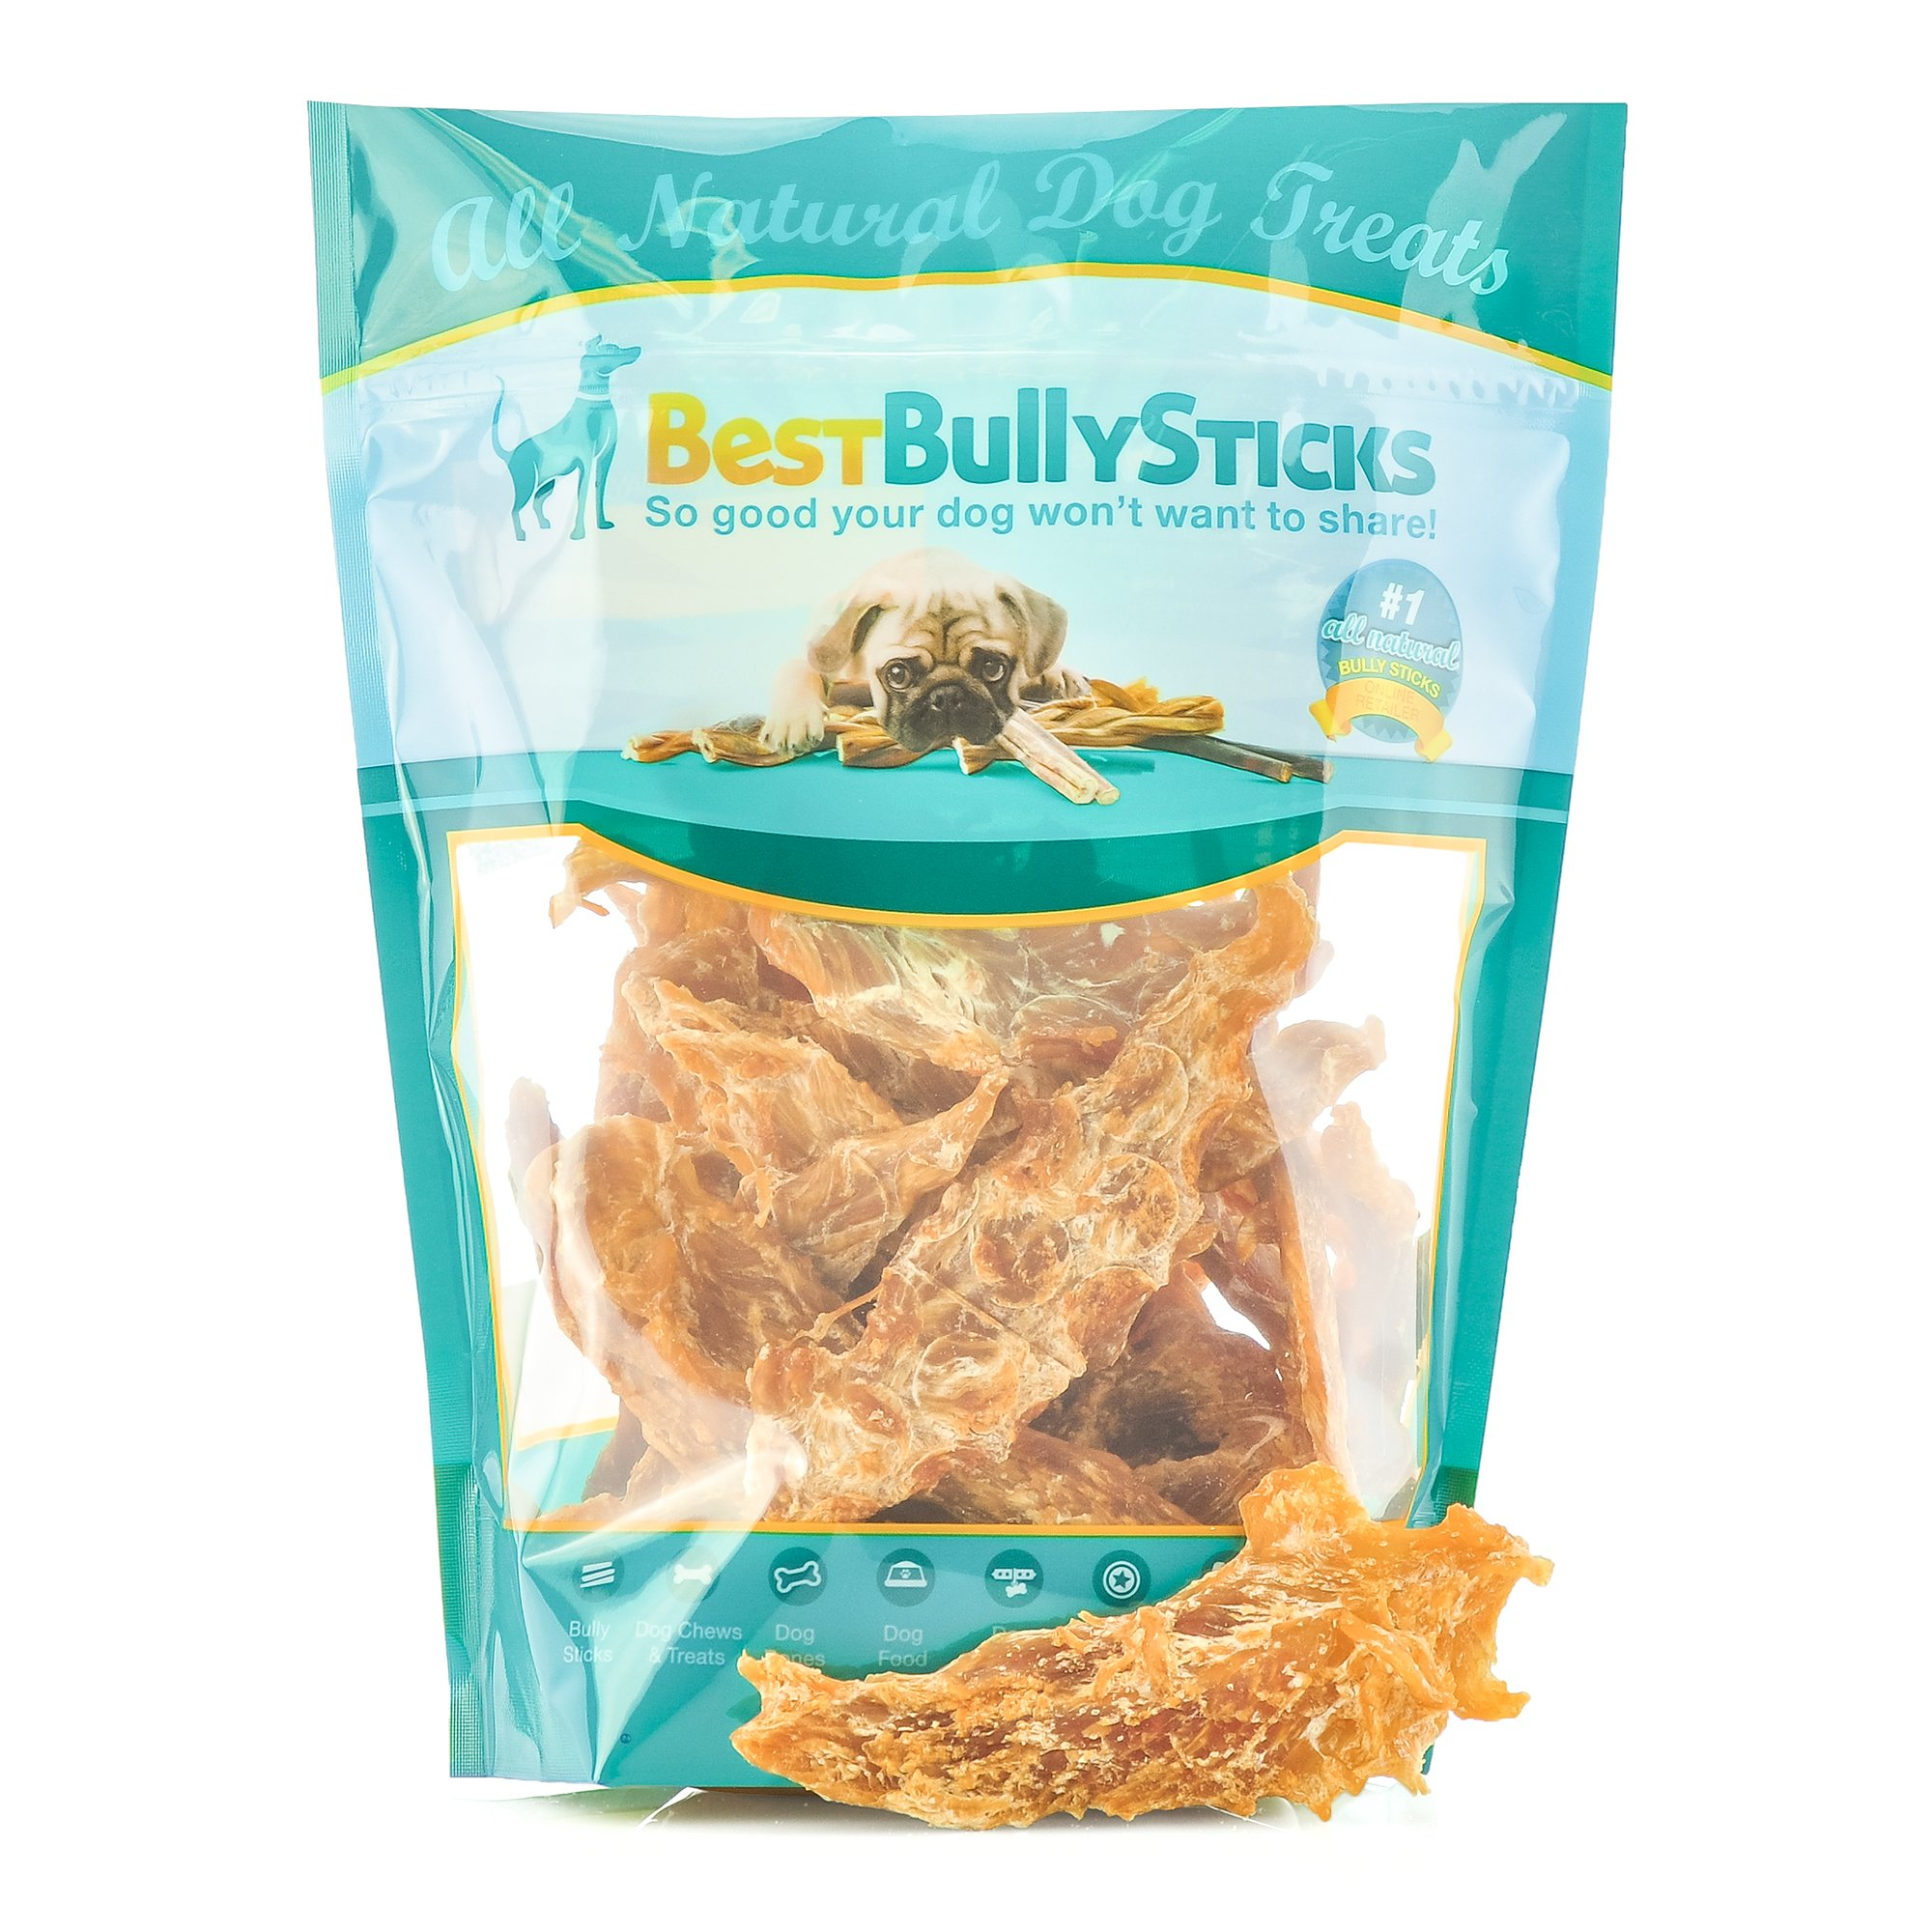 Best Bully Sticks Premium Chicken Jerky Dog Treats, All-Natural Slow-Cooked Whole Muscle Dog Treats, 8oz. Bag